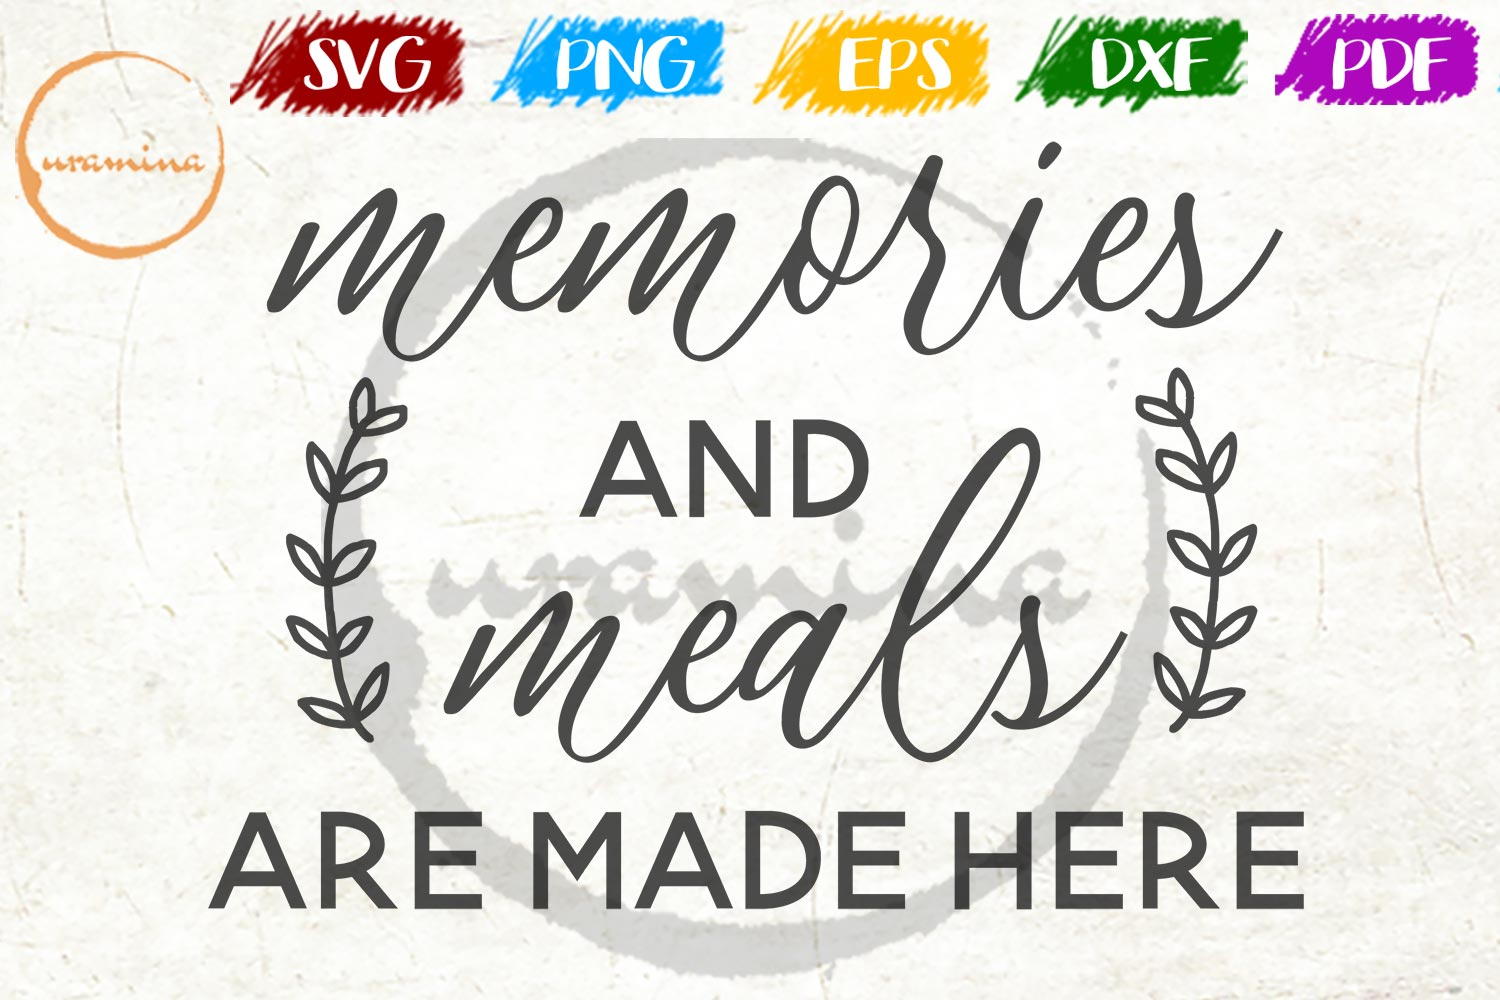 Download Free Memories And Meals Are Made Here Graphic By Uramina Creative for Cricut Explore, Silhouette and other cutting machines.